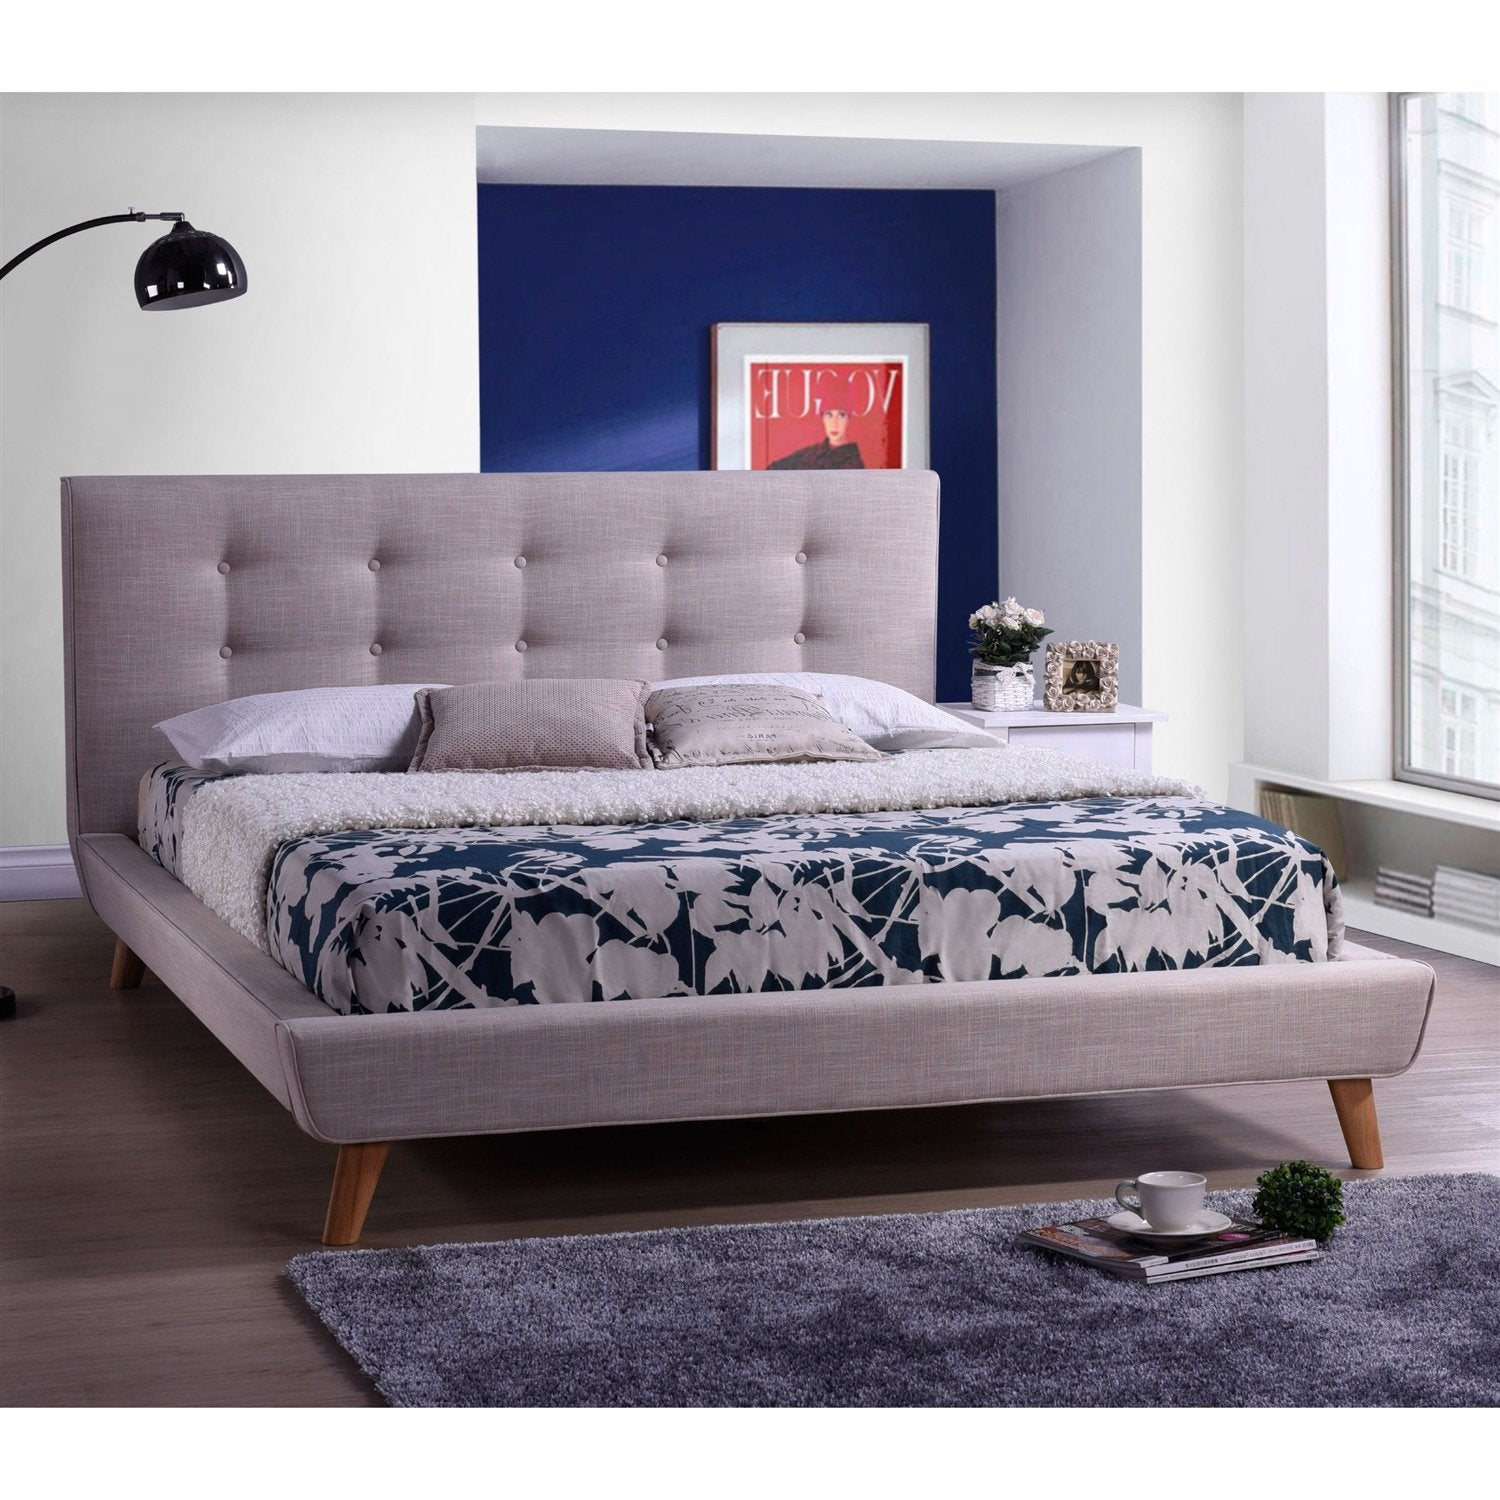 Full size Beige Linen Platform Bed with Button Tufted Headboard